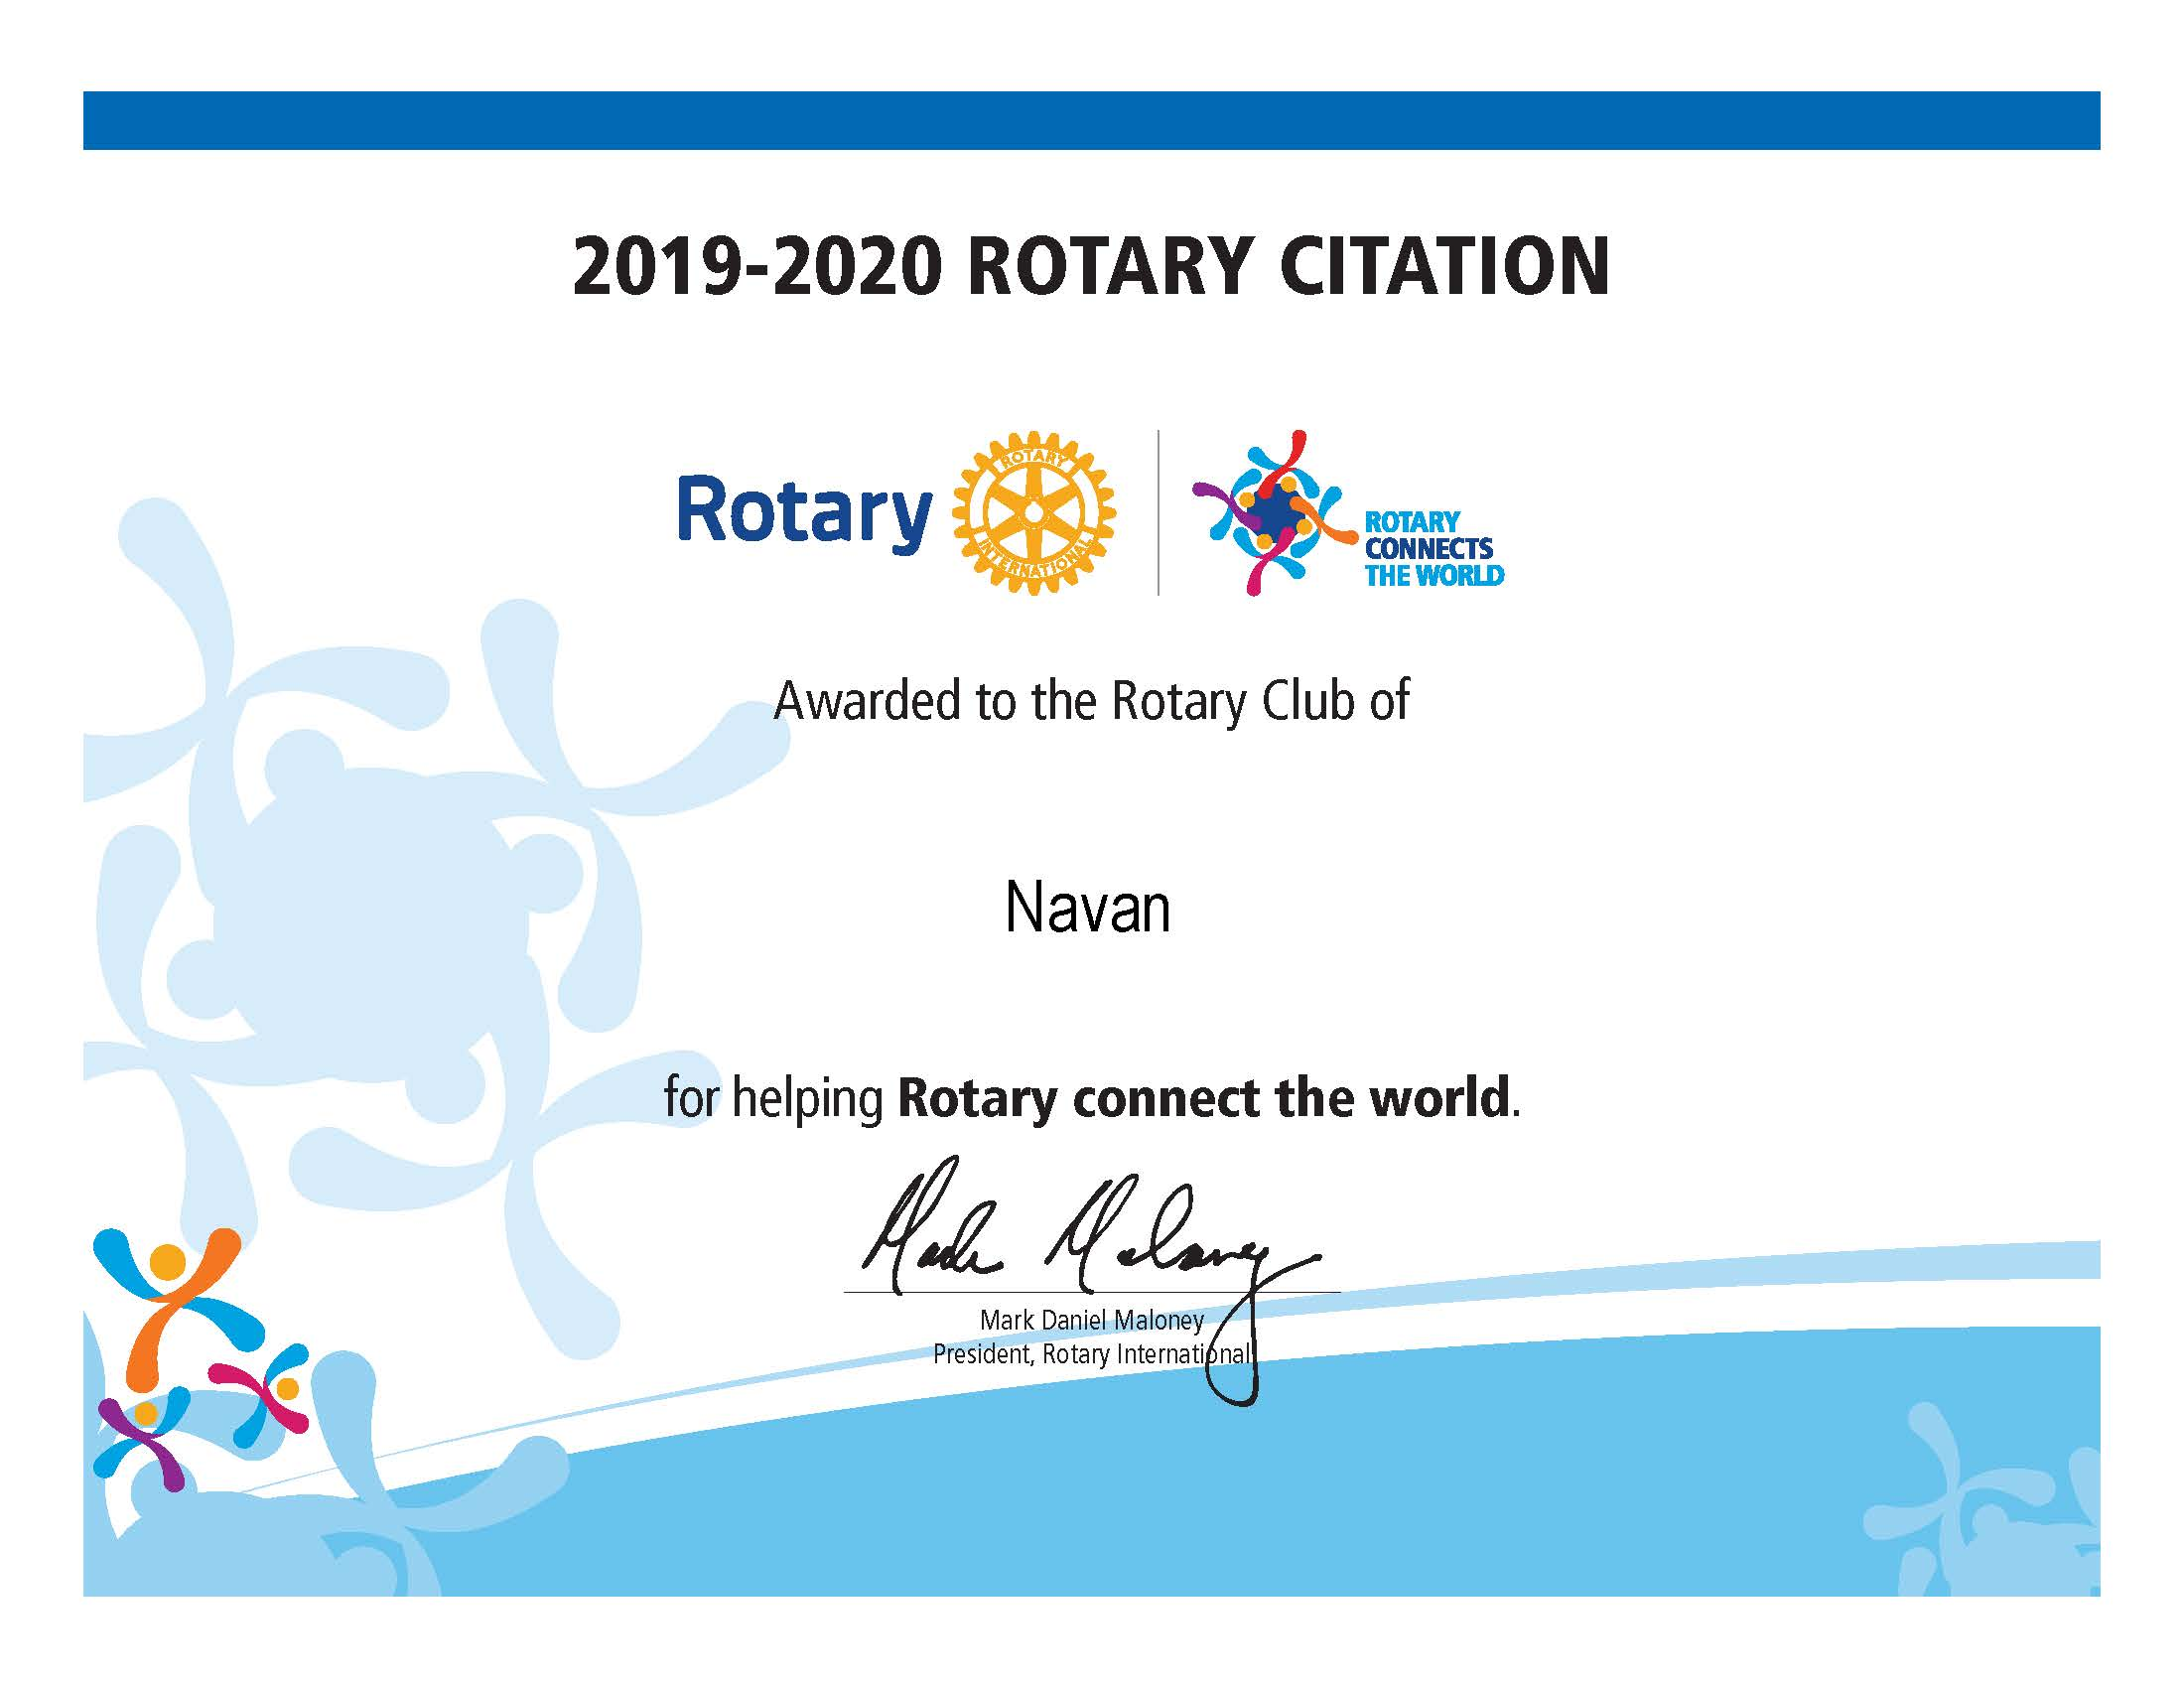 Rotary Club of Navan - Citation 2019-2020